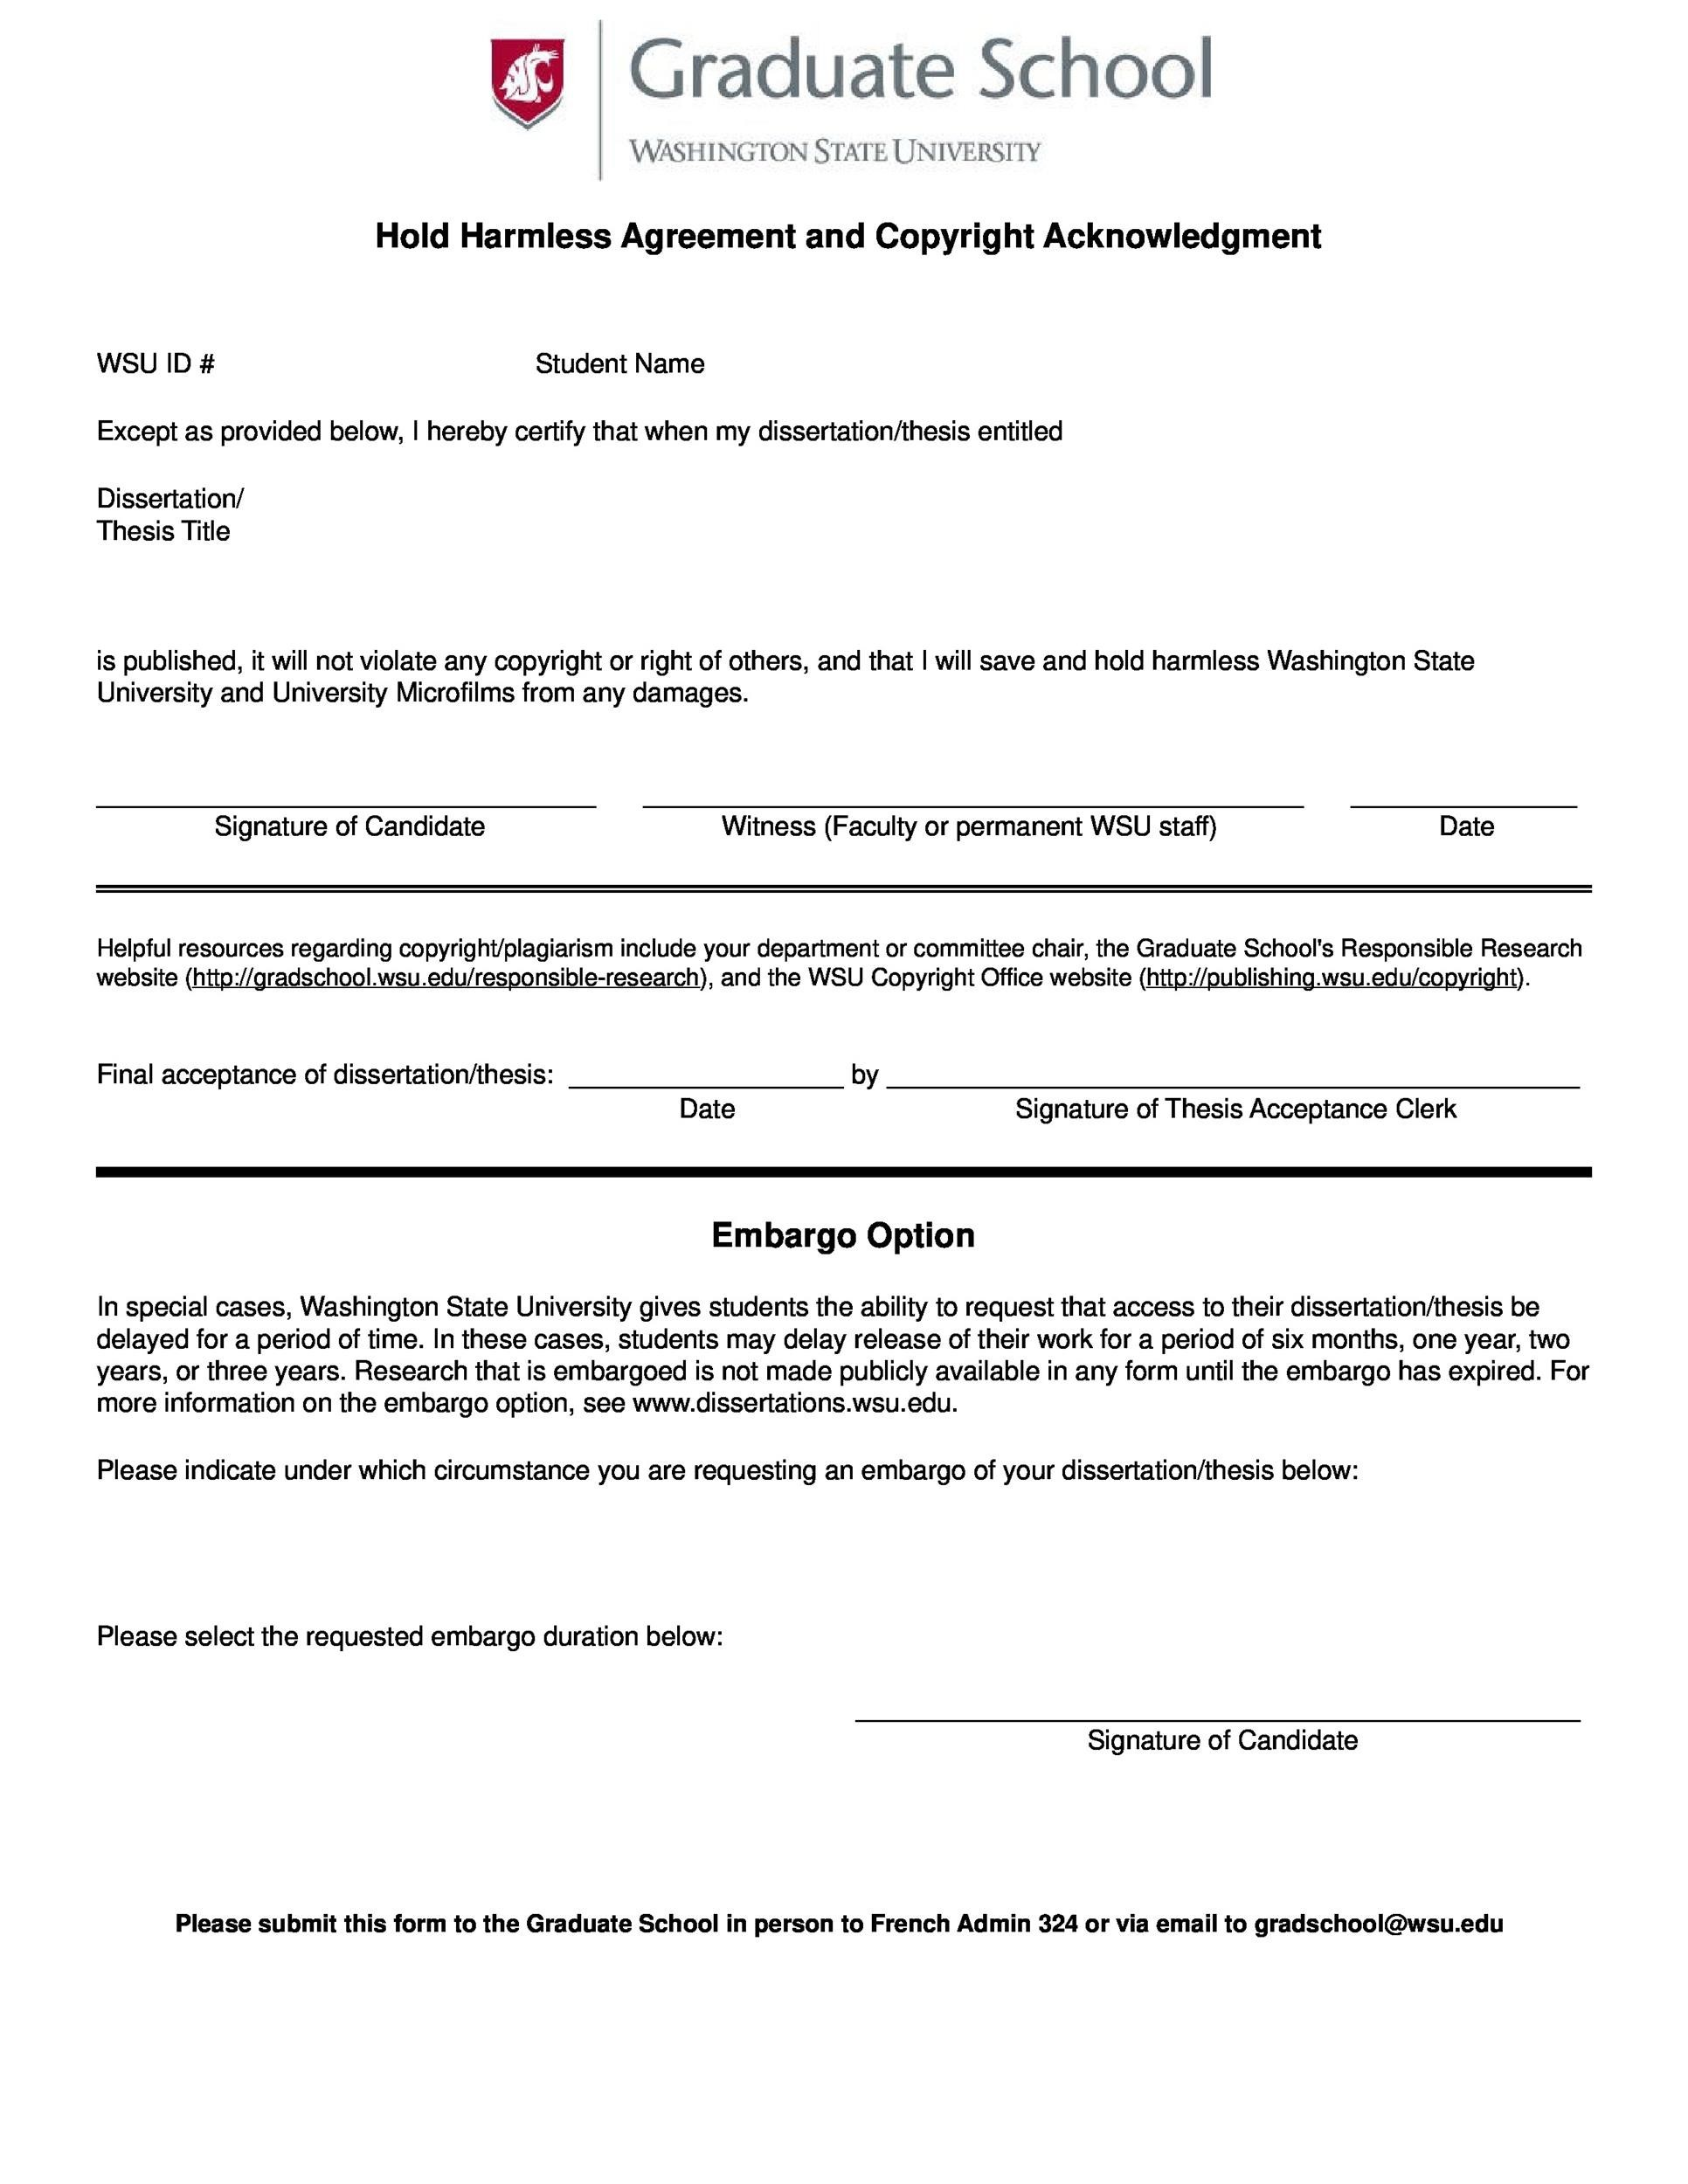 Free Hold Harmless Agreement Template 06